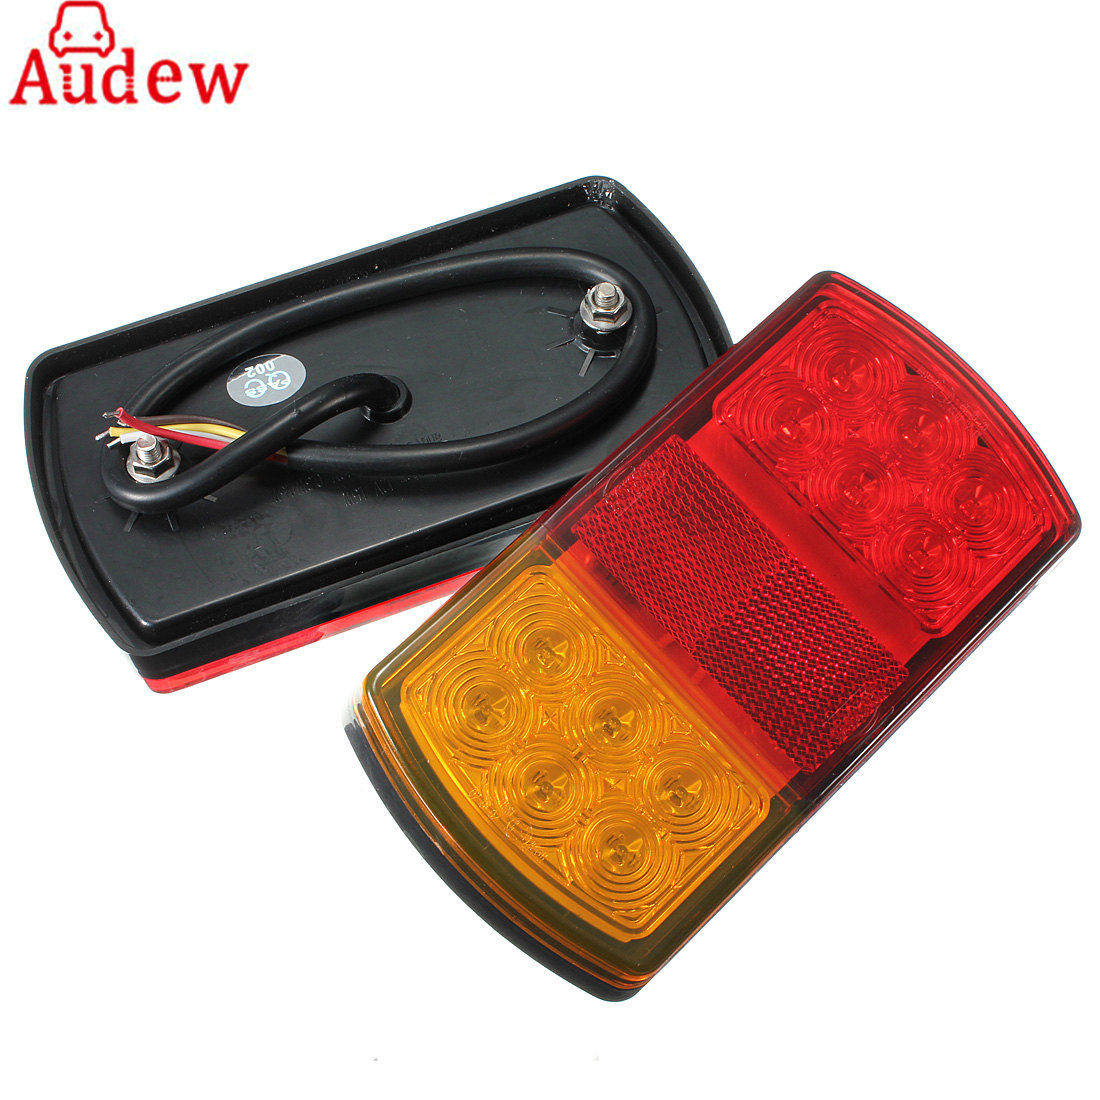 2PCS 5 11Inch Trailer Truck Ute Bus Stop Rear Tail Indicator Light Waterproof Side Light and